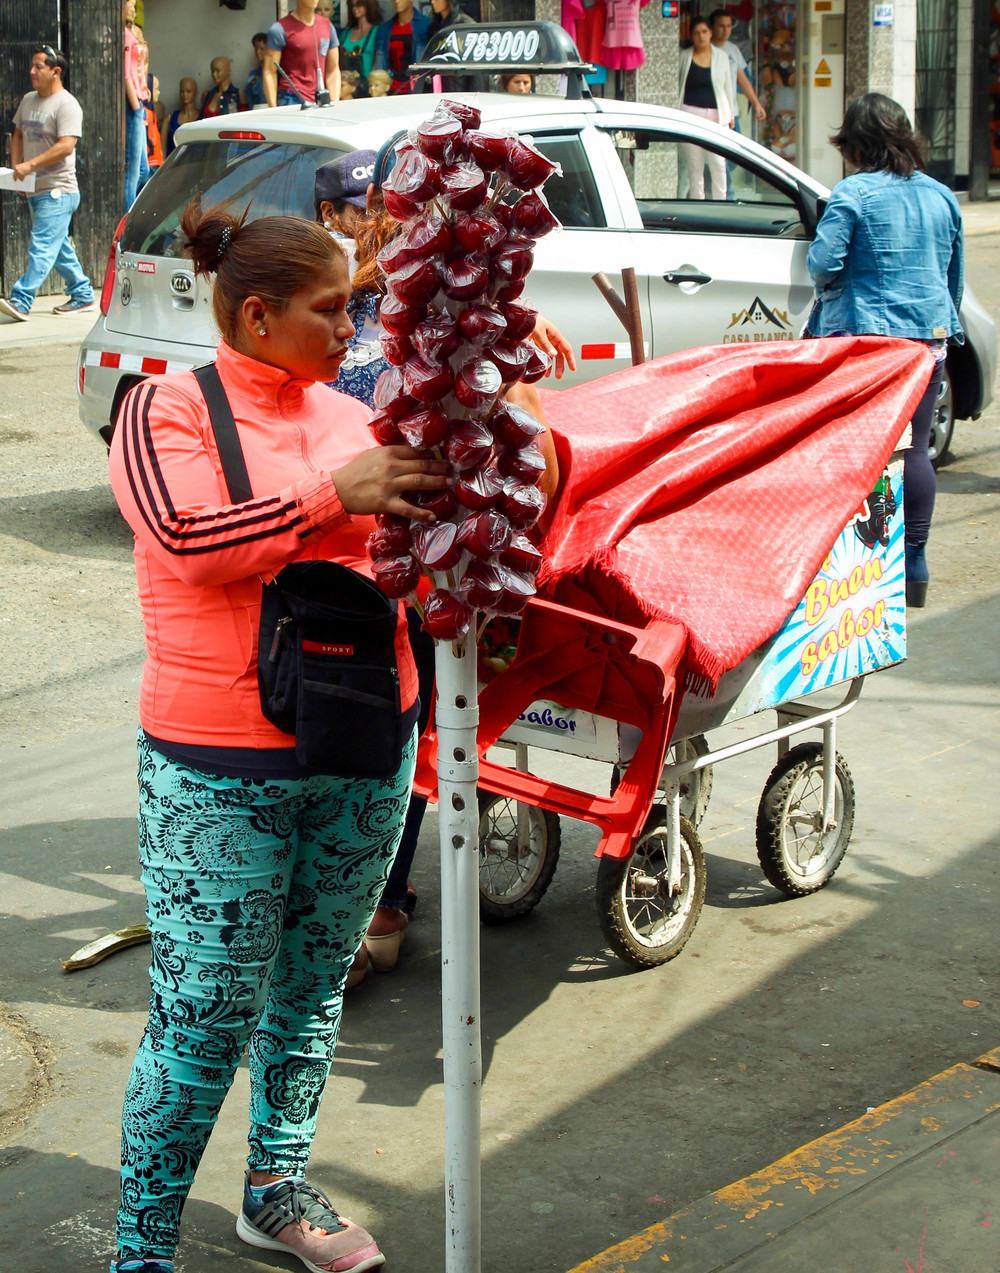 Sugar, sugar and more sugar. Amongst the scale vendors you will find many food vendors, most of whom sell sugary snacks (such as these red, candy apples) or mazamorra morada (Peruvian purple corn pudding).